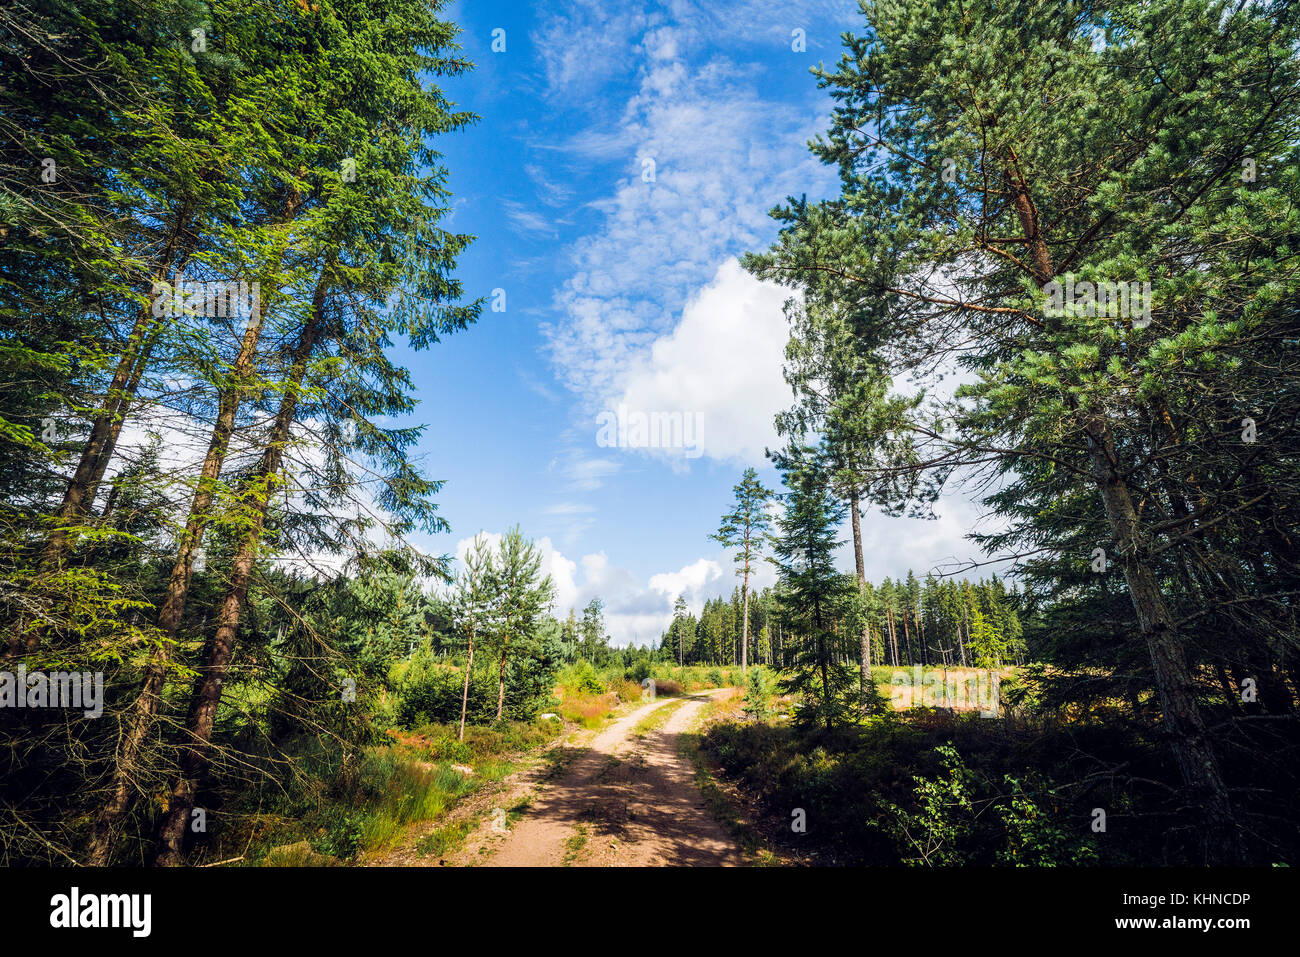 Road in a nordic forest with tall pine trees amd blue sky - Stock Image